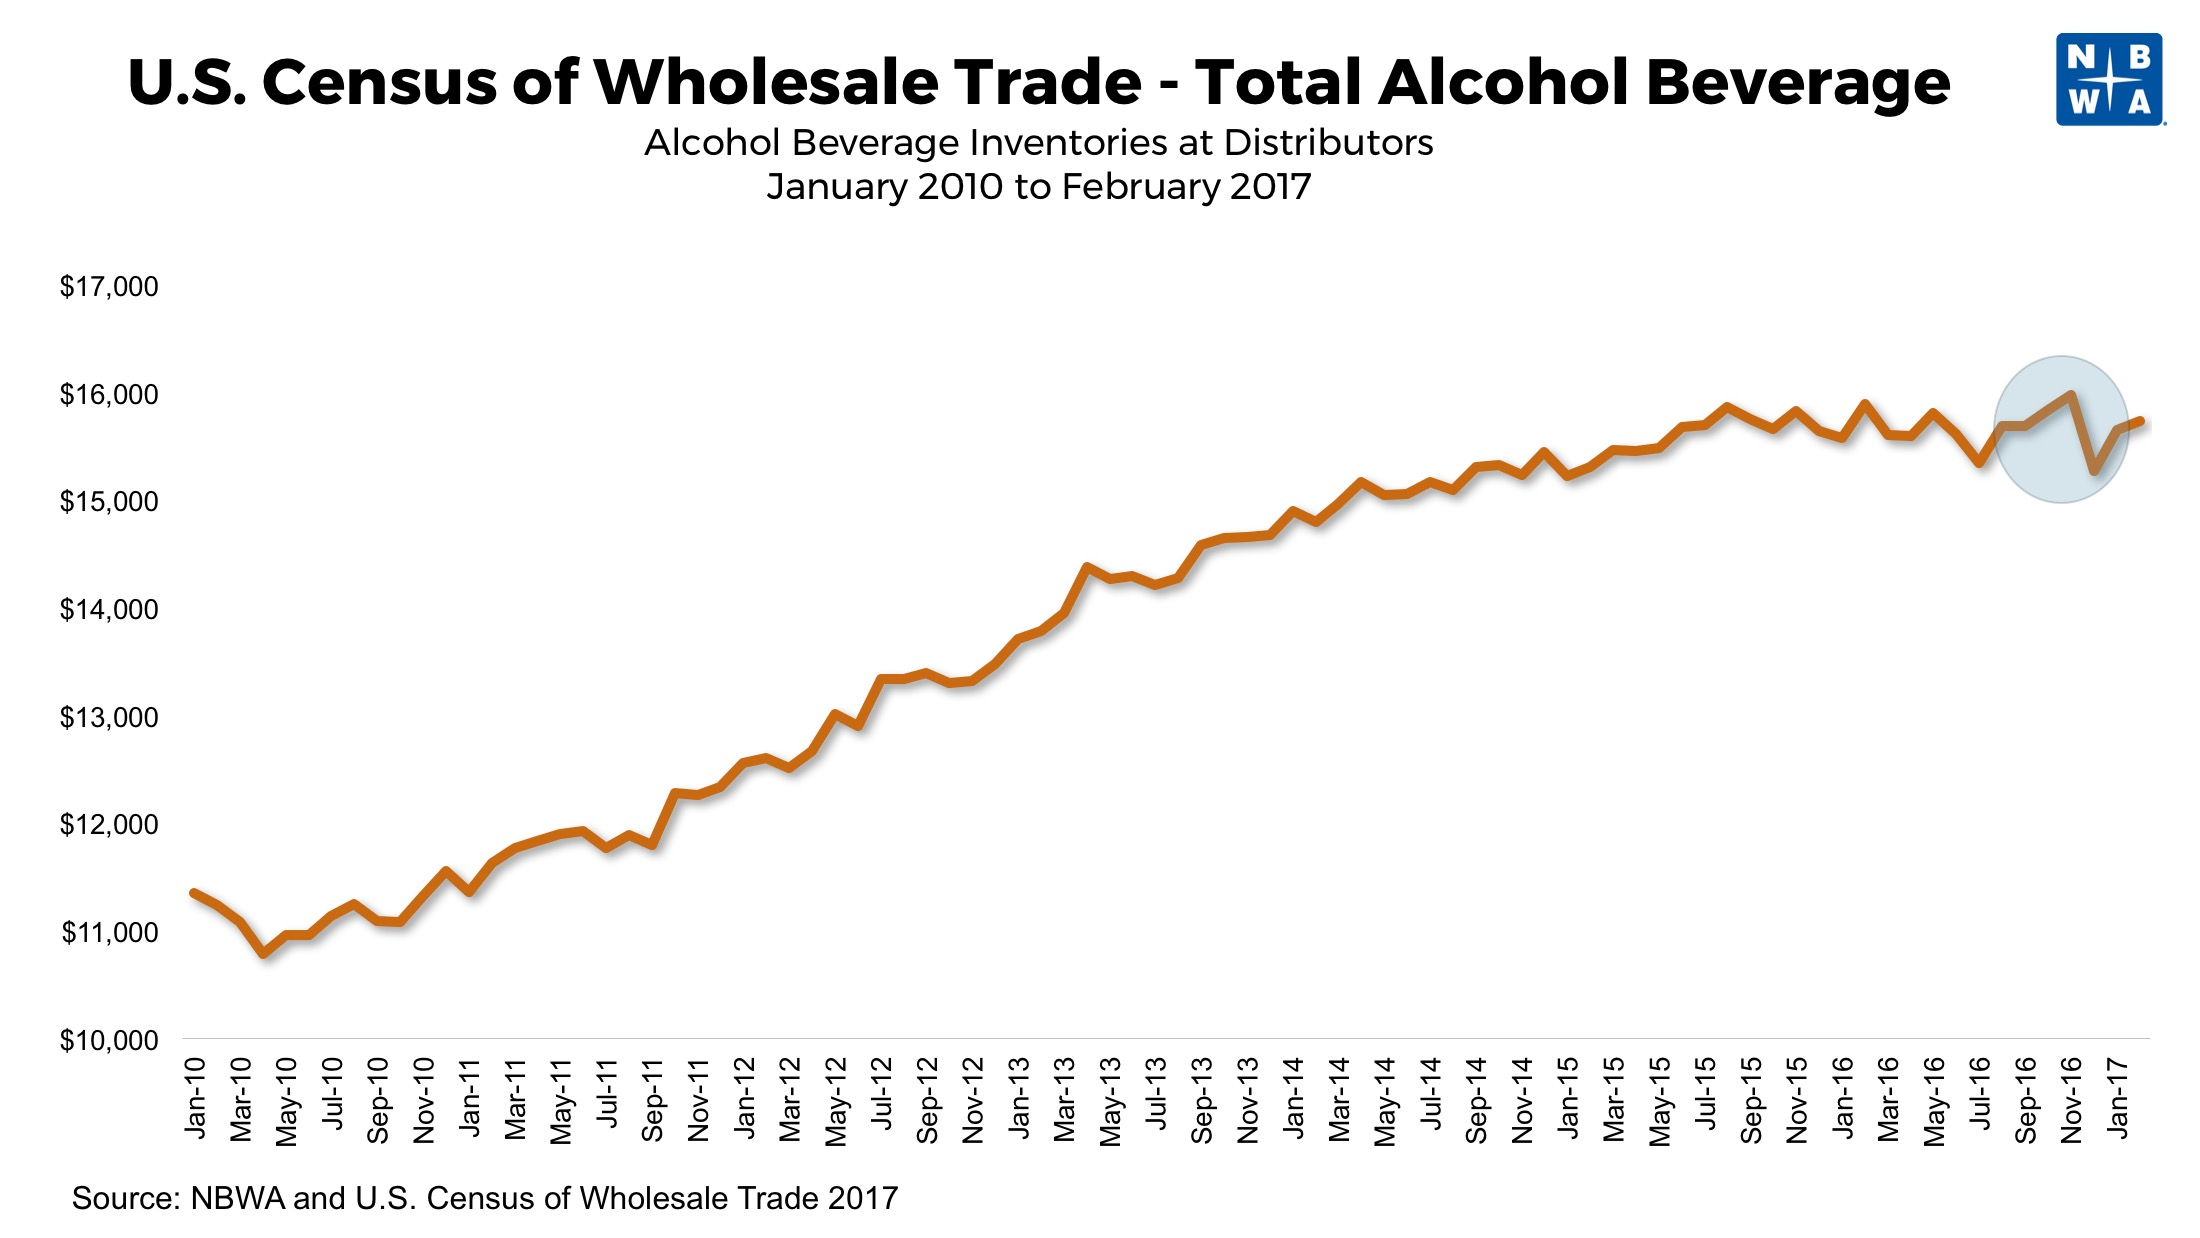 Alcohol Beverage Inventories at Distributors 2010 to 2017